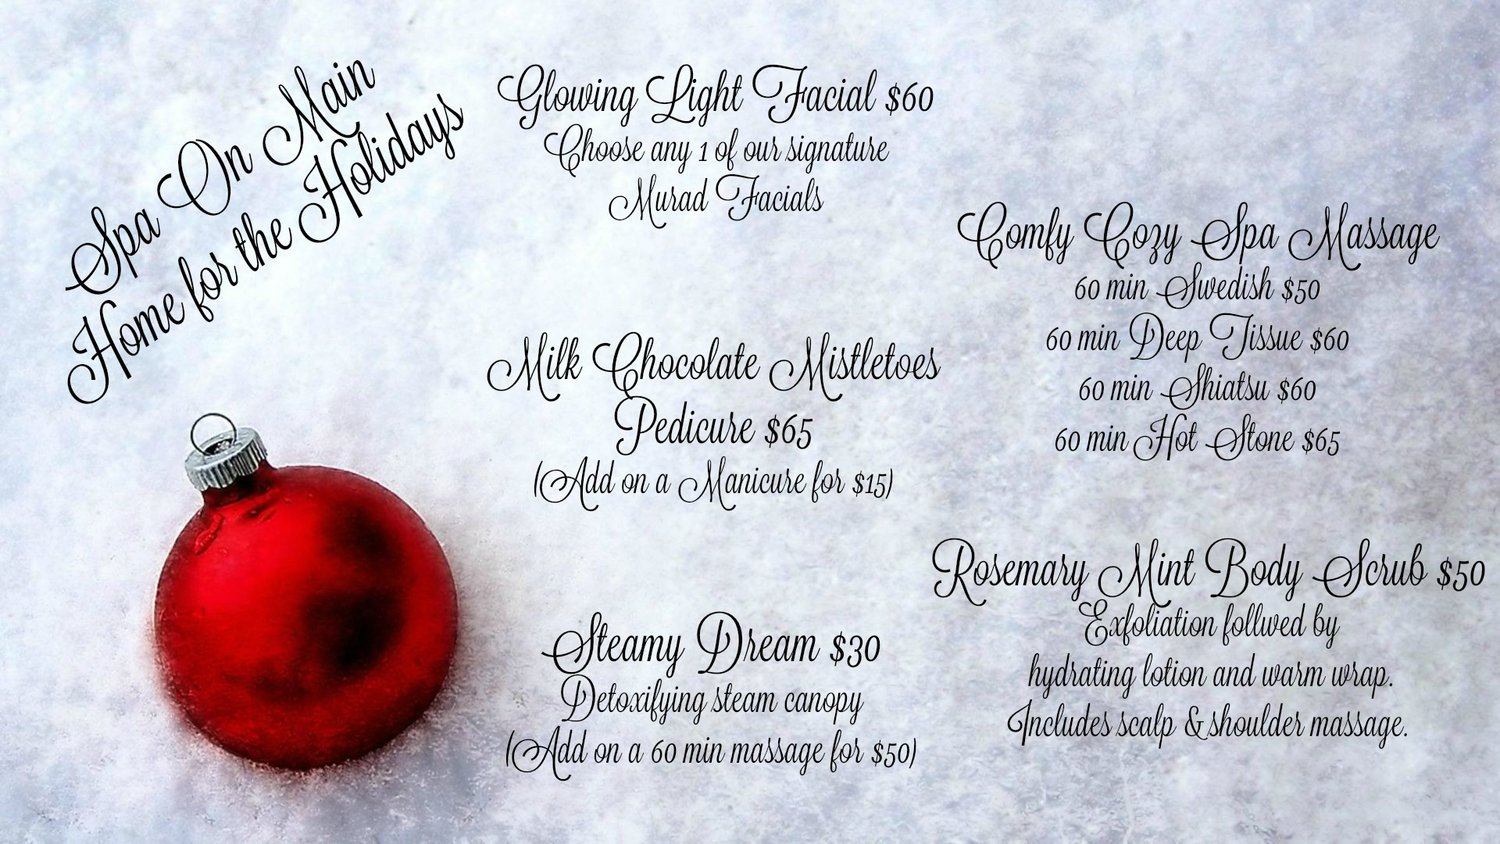 Christmas Spa Packages.Spa On Main S Christmas Specials Packages Spa On Main